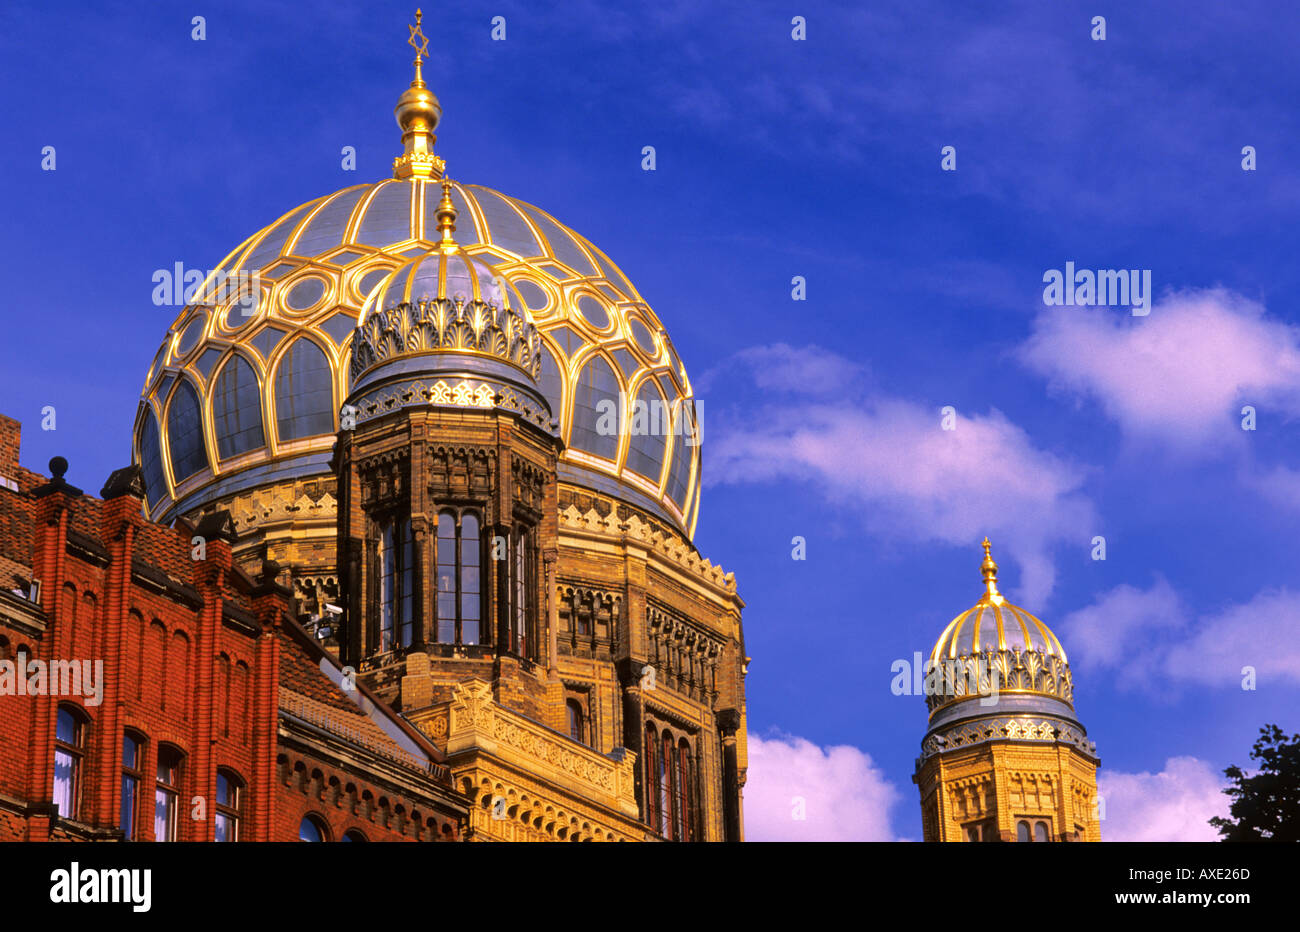 Golden dome of Synagogue Oranienburger Strasse Berlin Germany - Stock Image